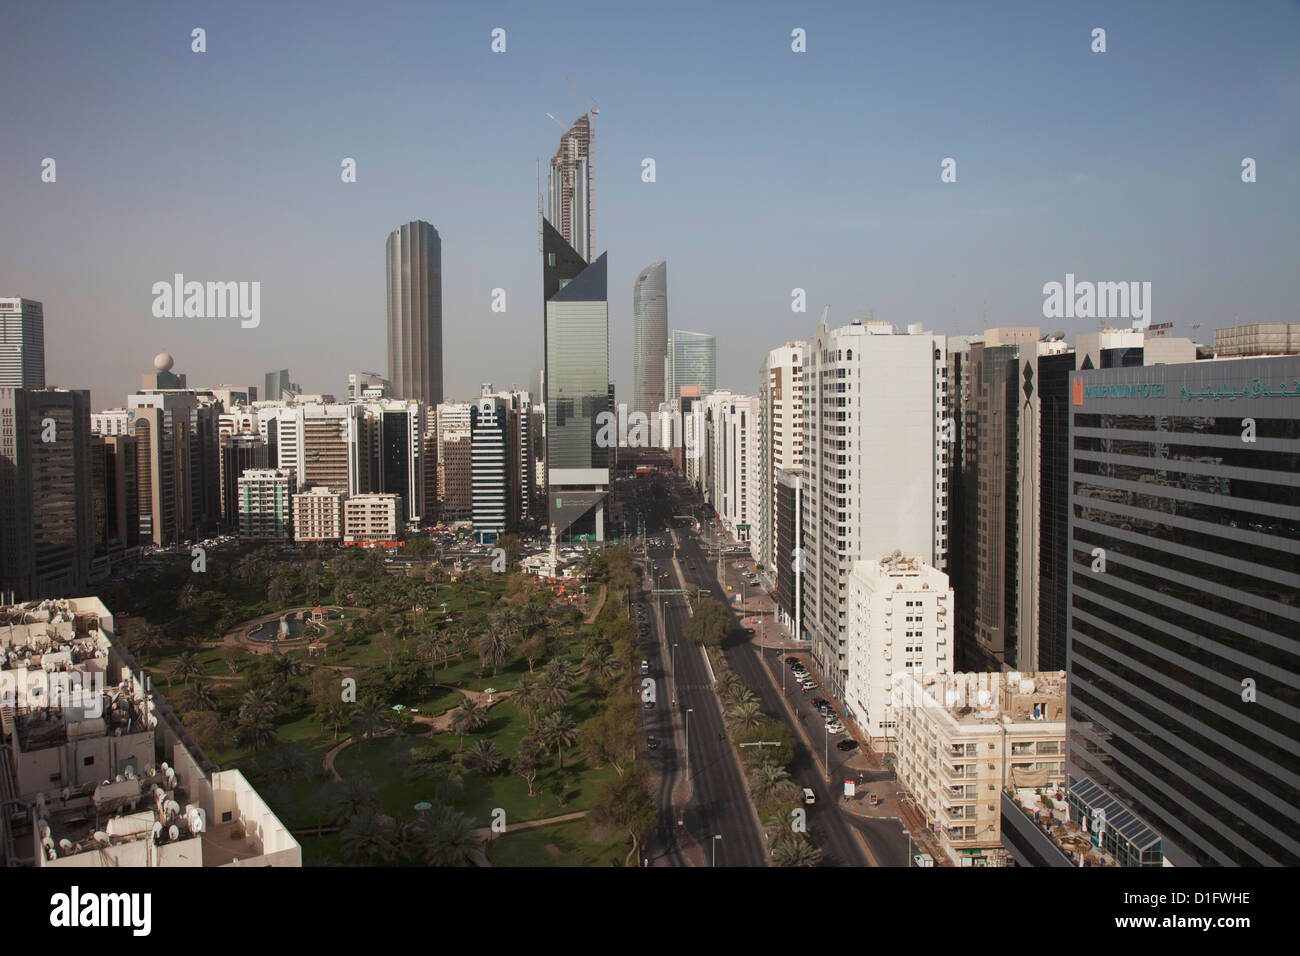 Abu Dhabi, United Arab Emirates, Middle East - Stock Image